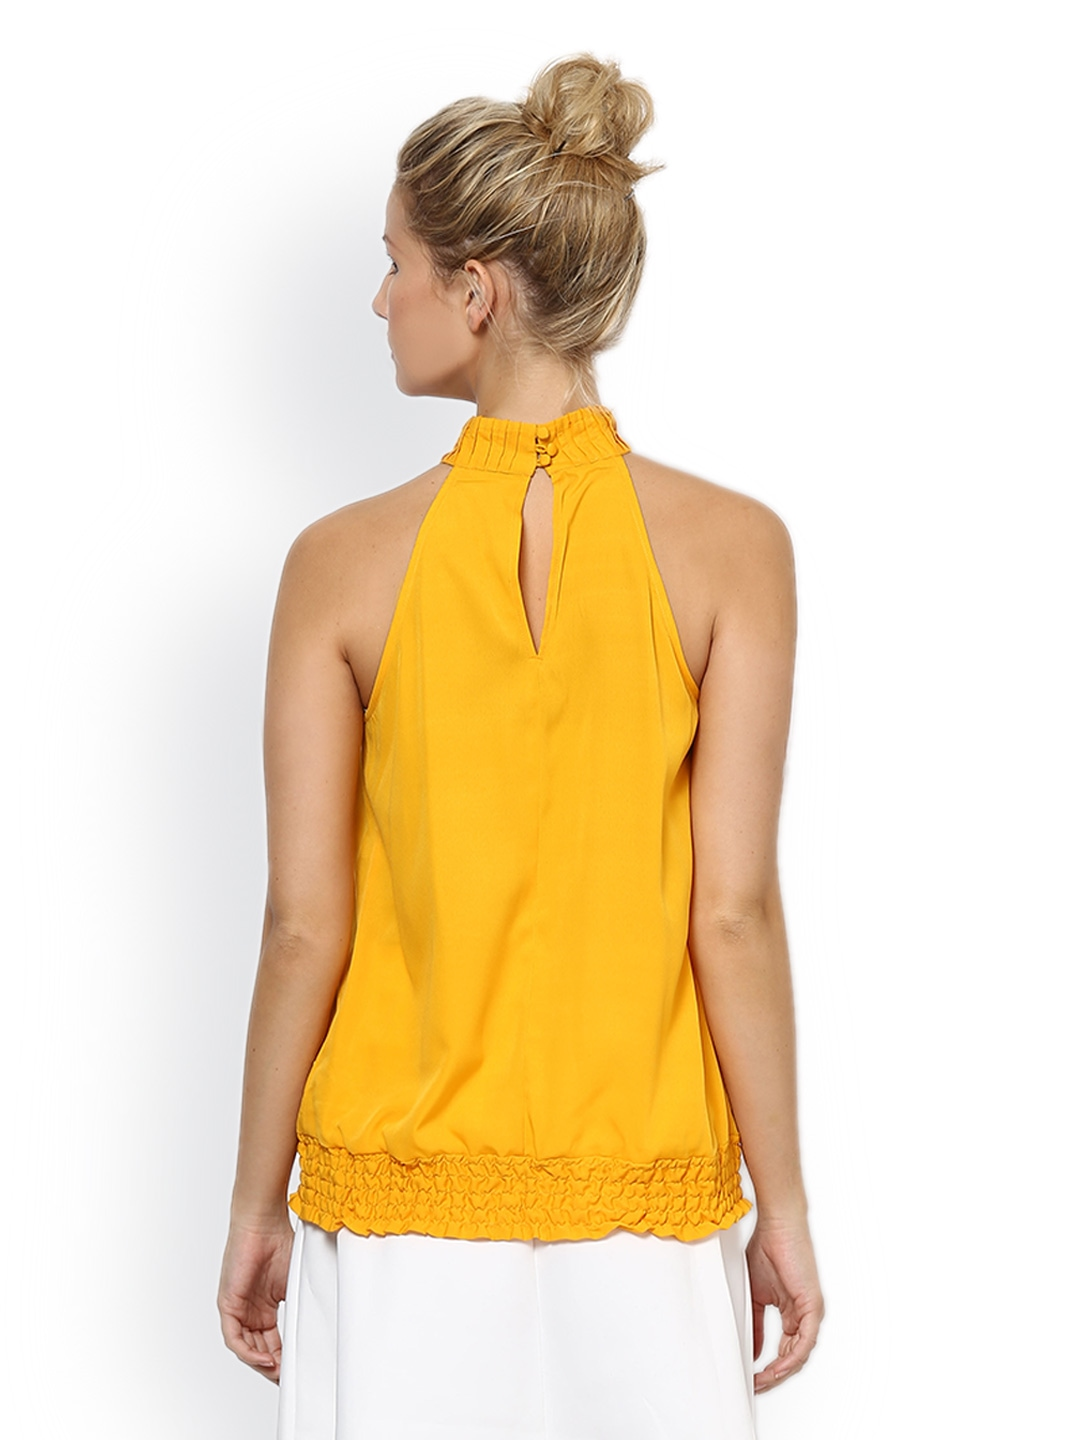 Women mustard yellow top 512539 buy myntra palette tops at best